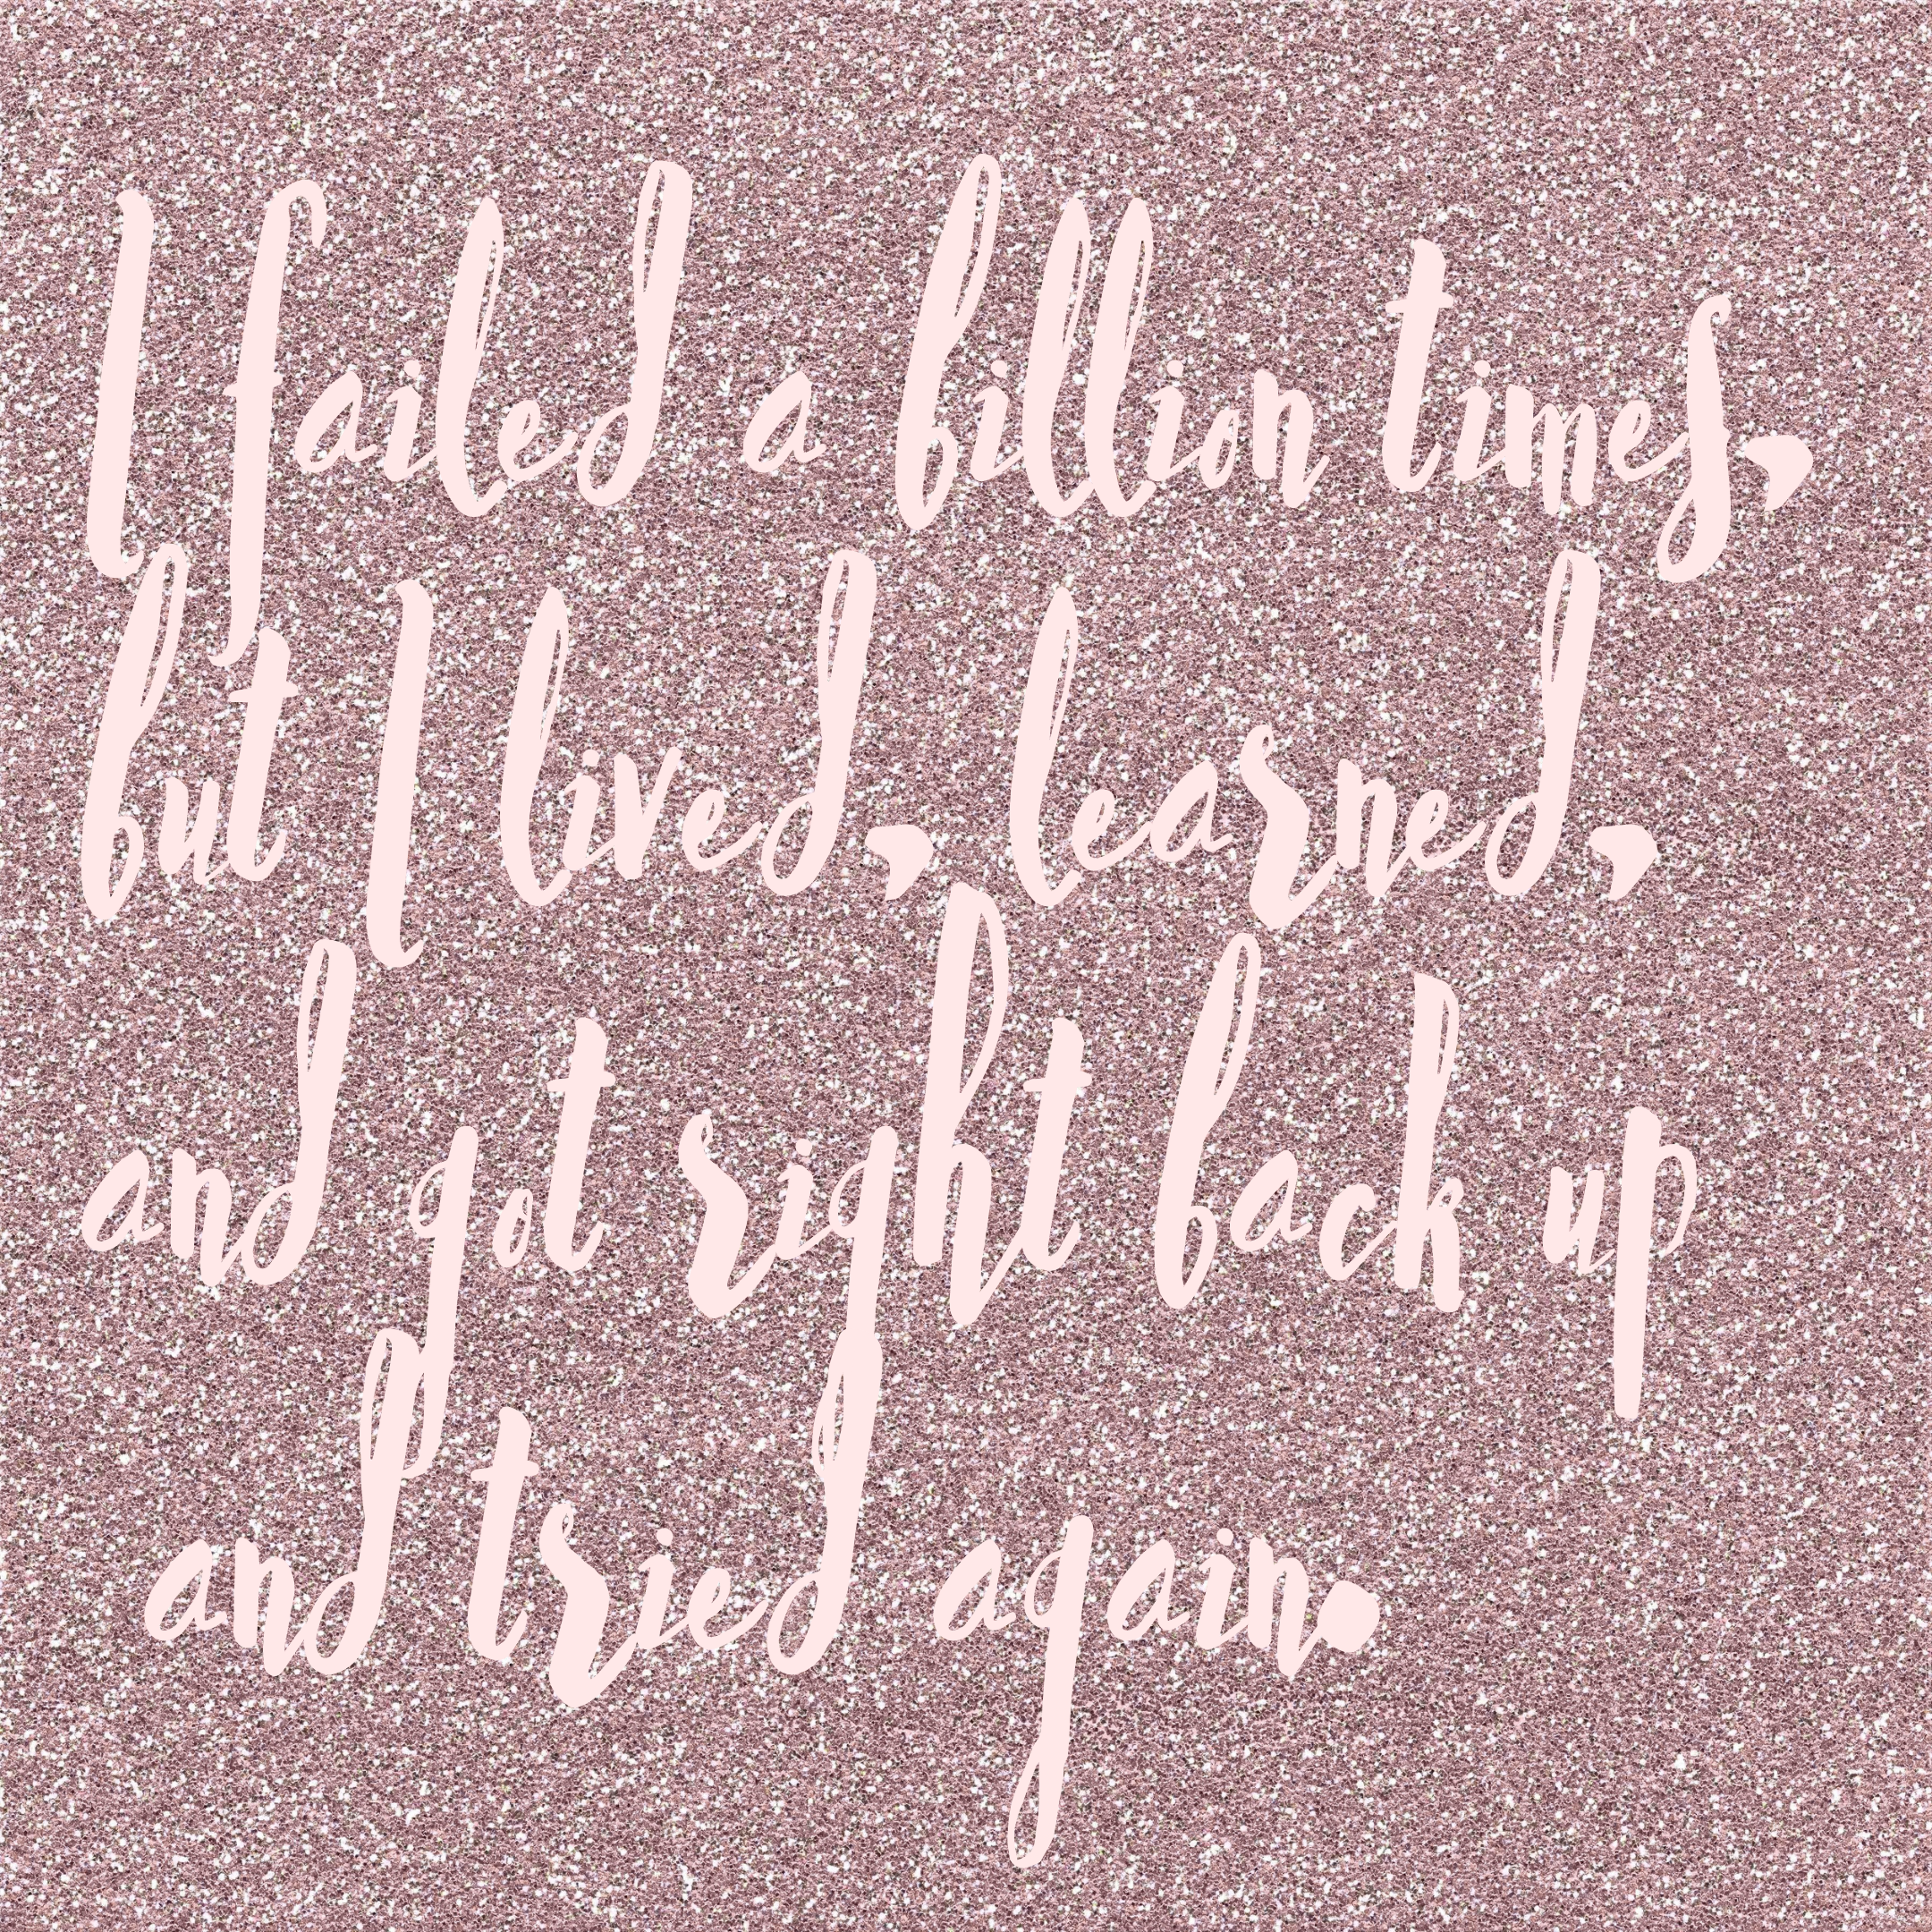 I failed a billion times, but I lived, learned, and got back right up and tried again.